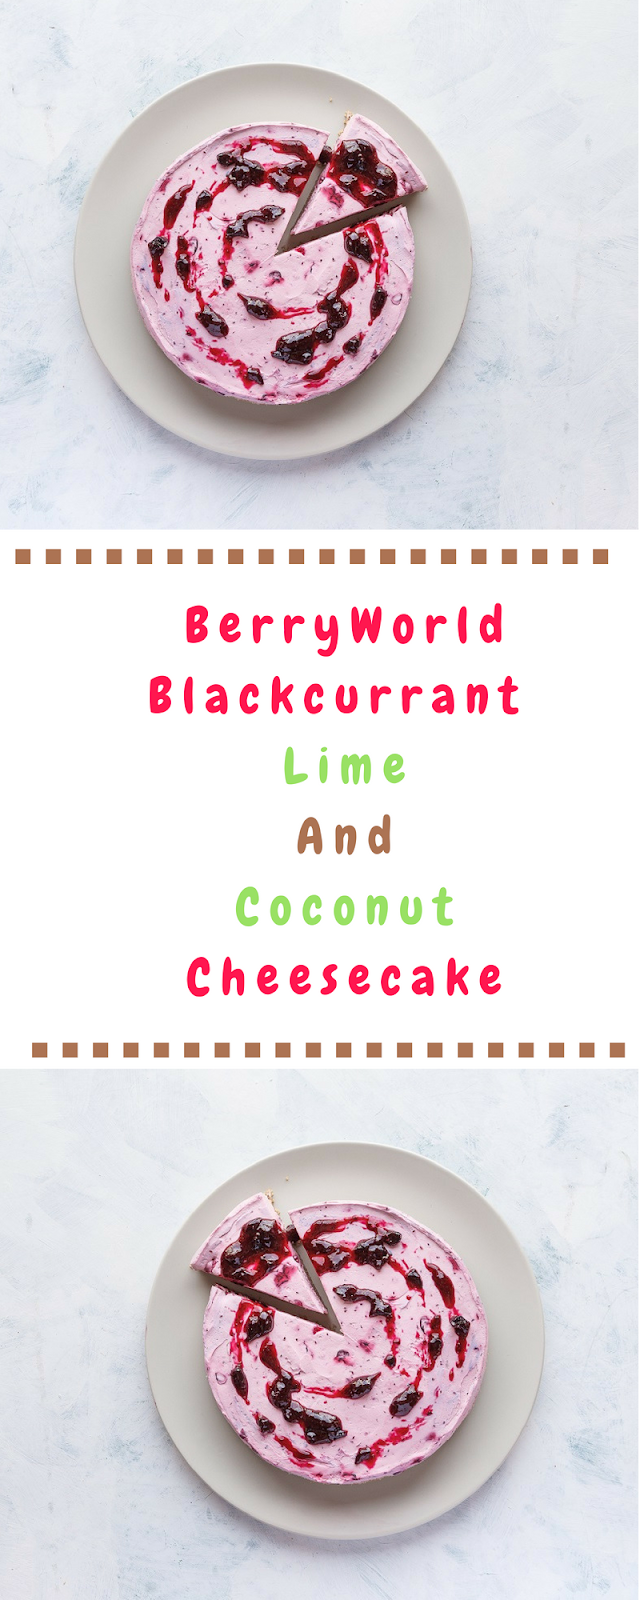 BerryWorld Blackcurrant, Lime And Coconut Cheesecake